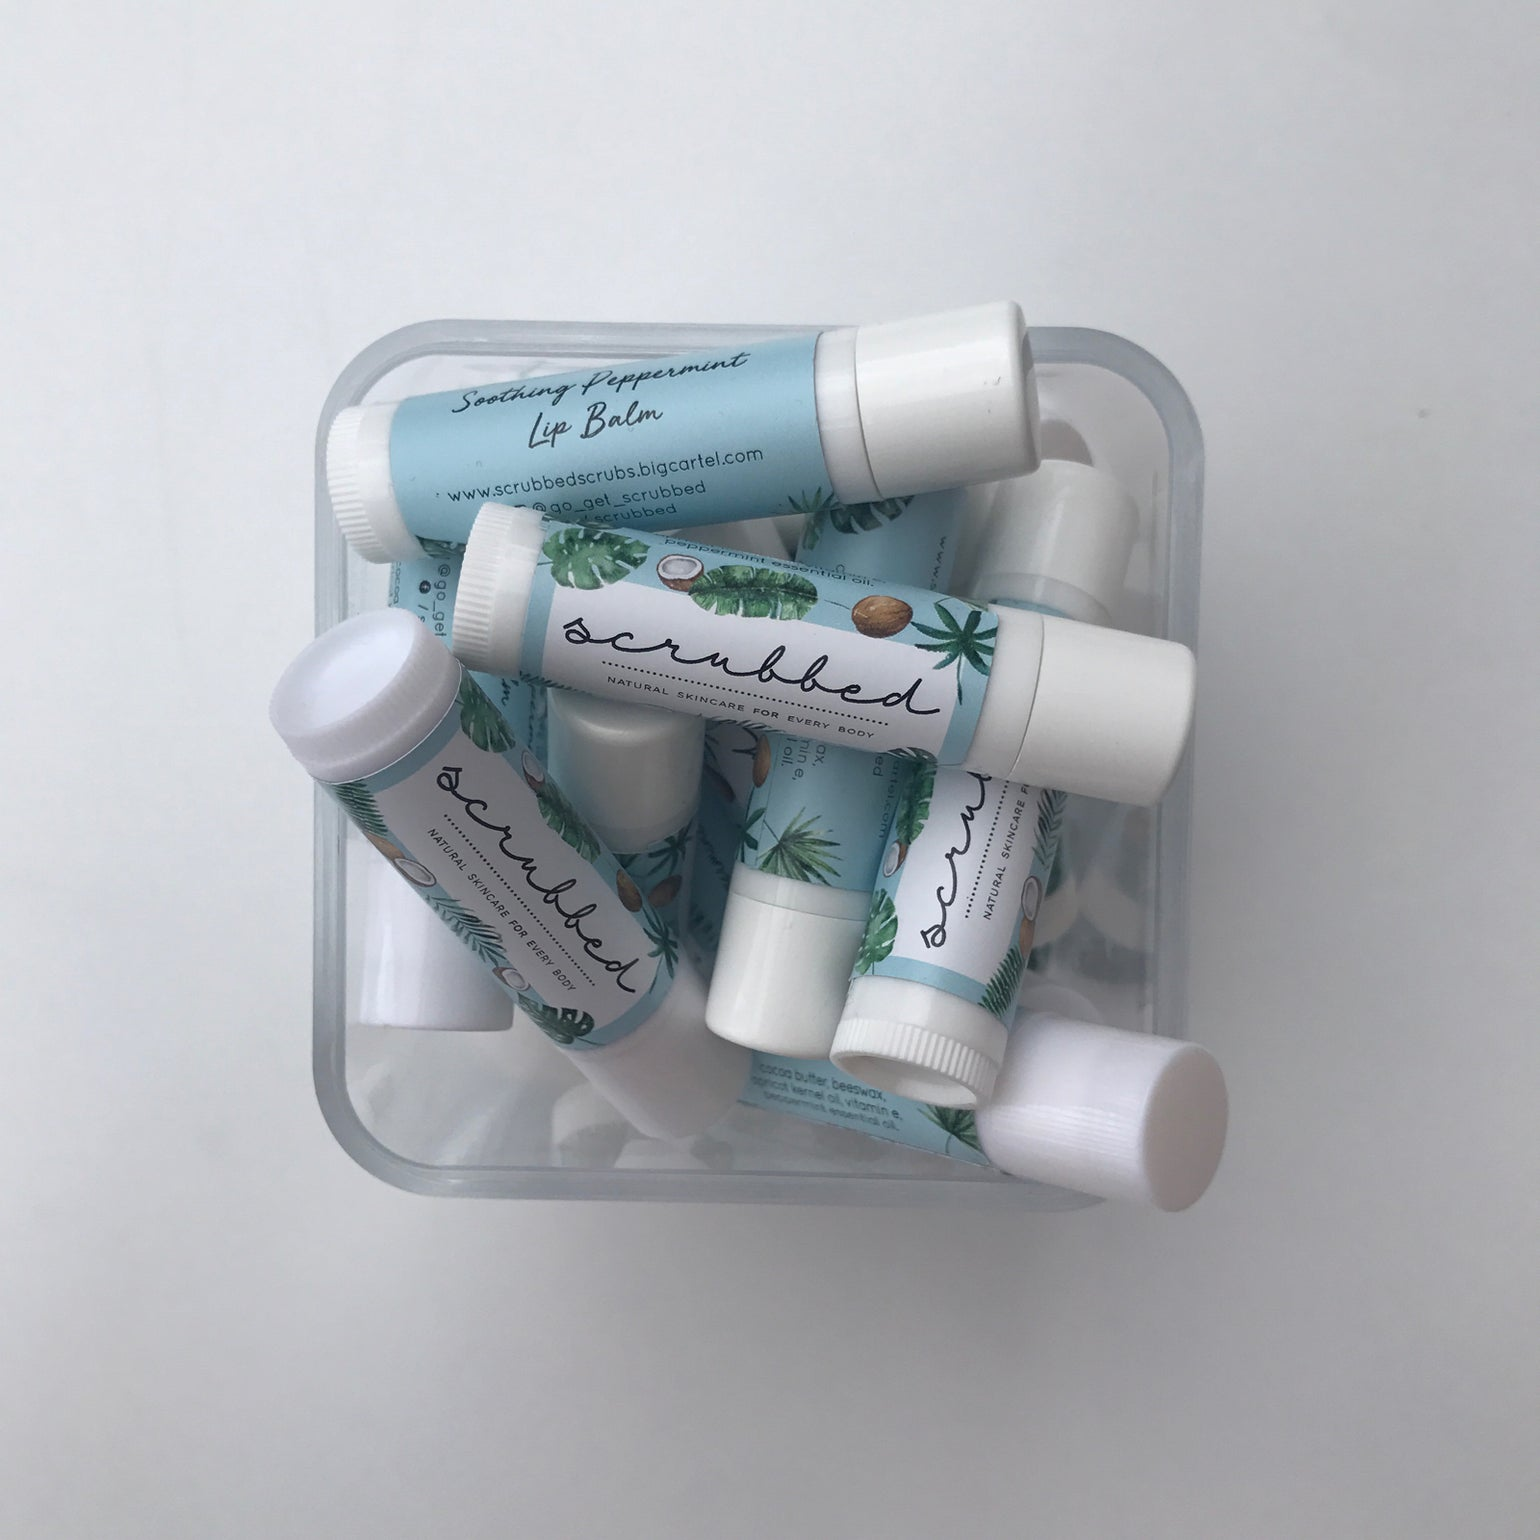 Image of Soothing Peppermint Lip Balm